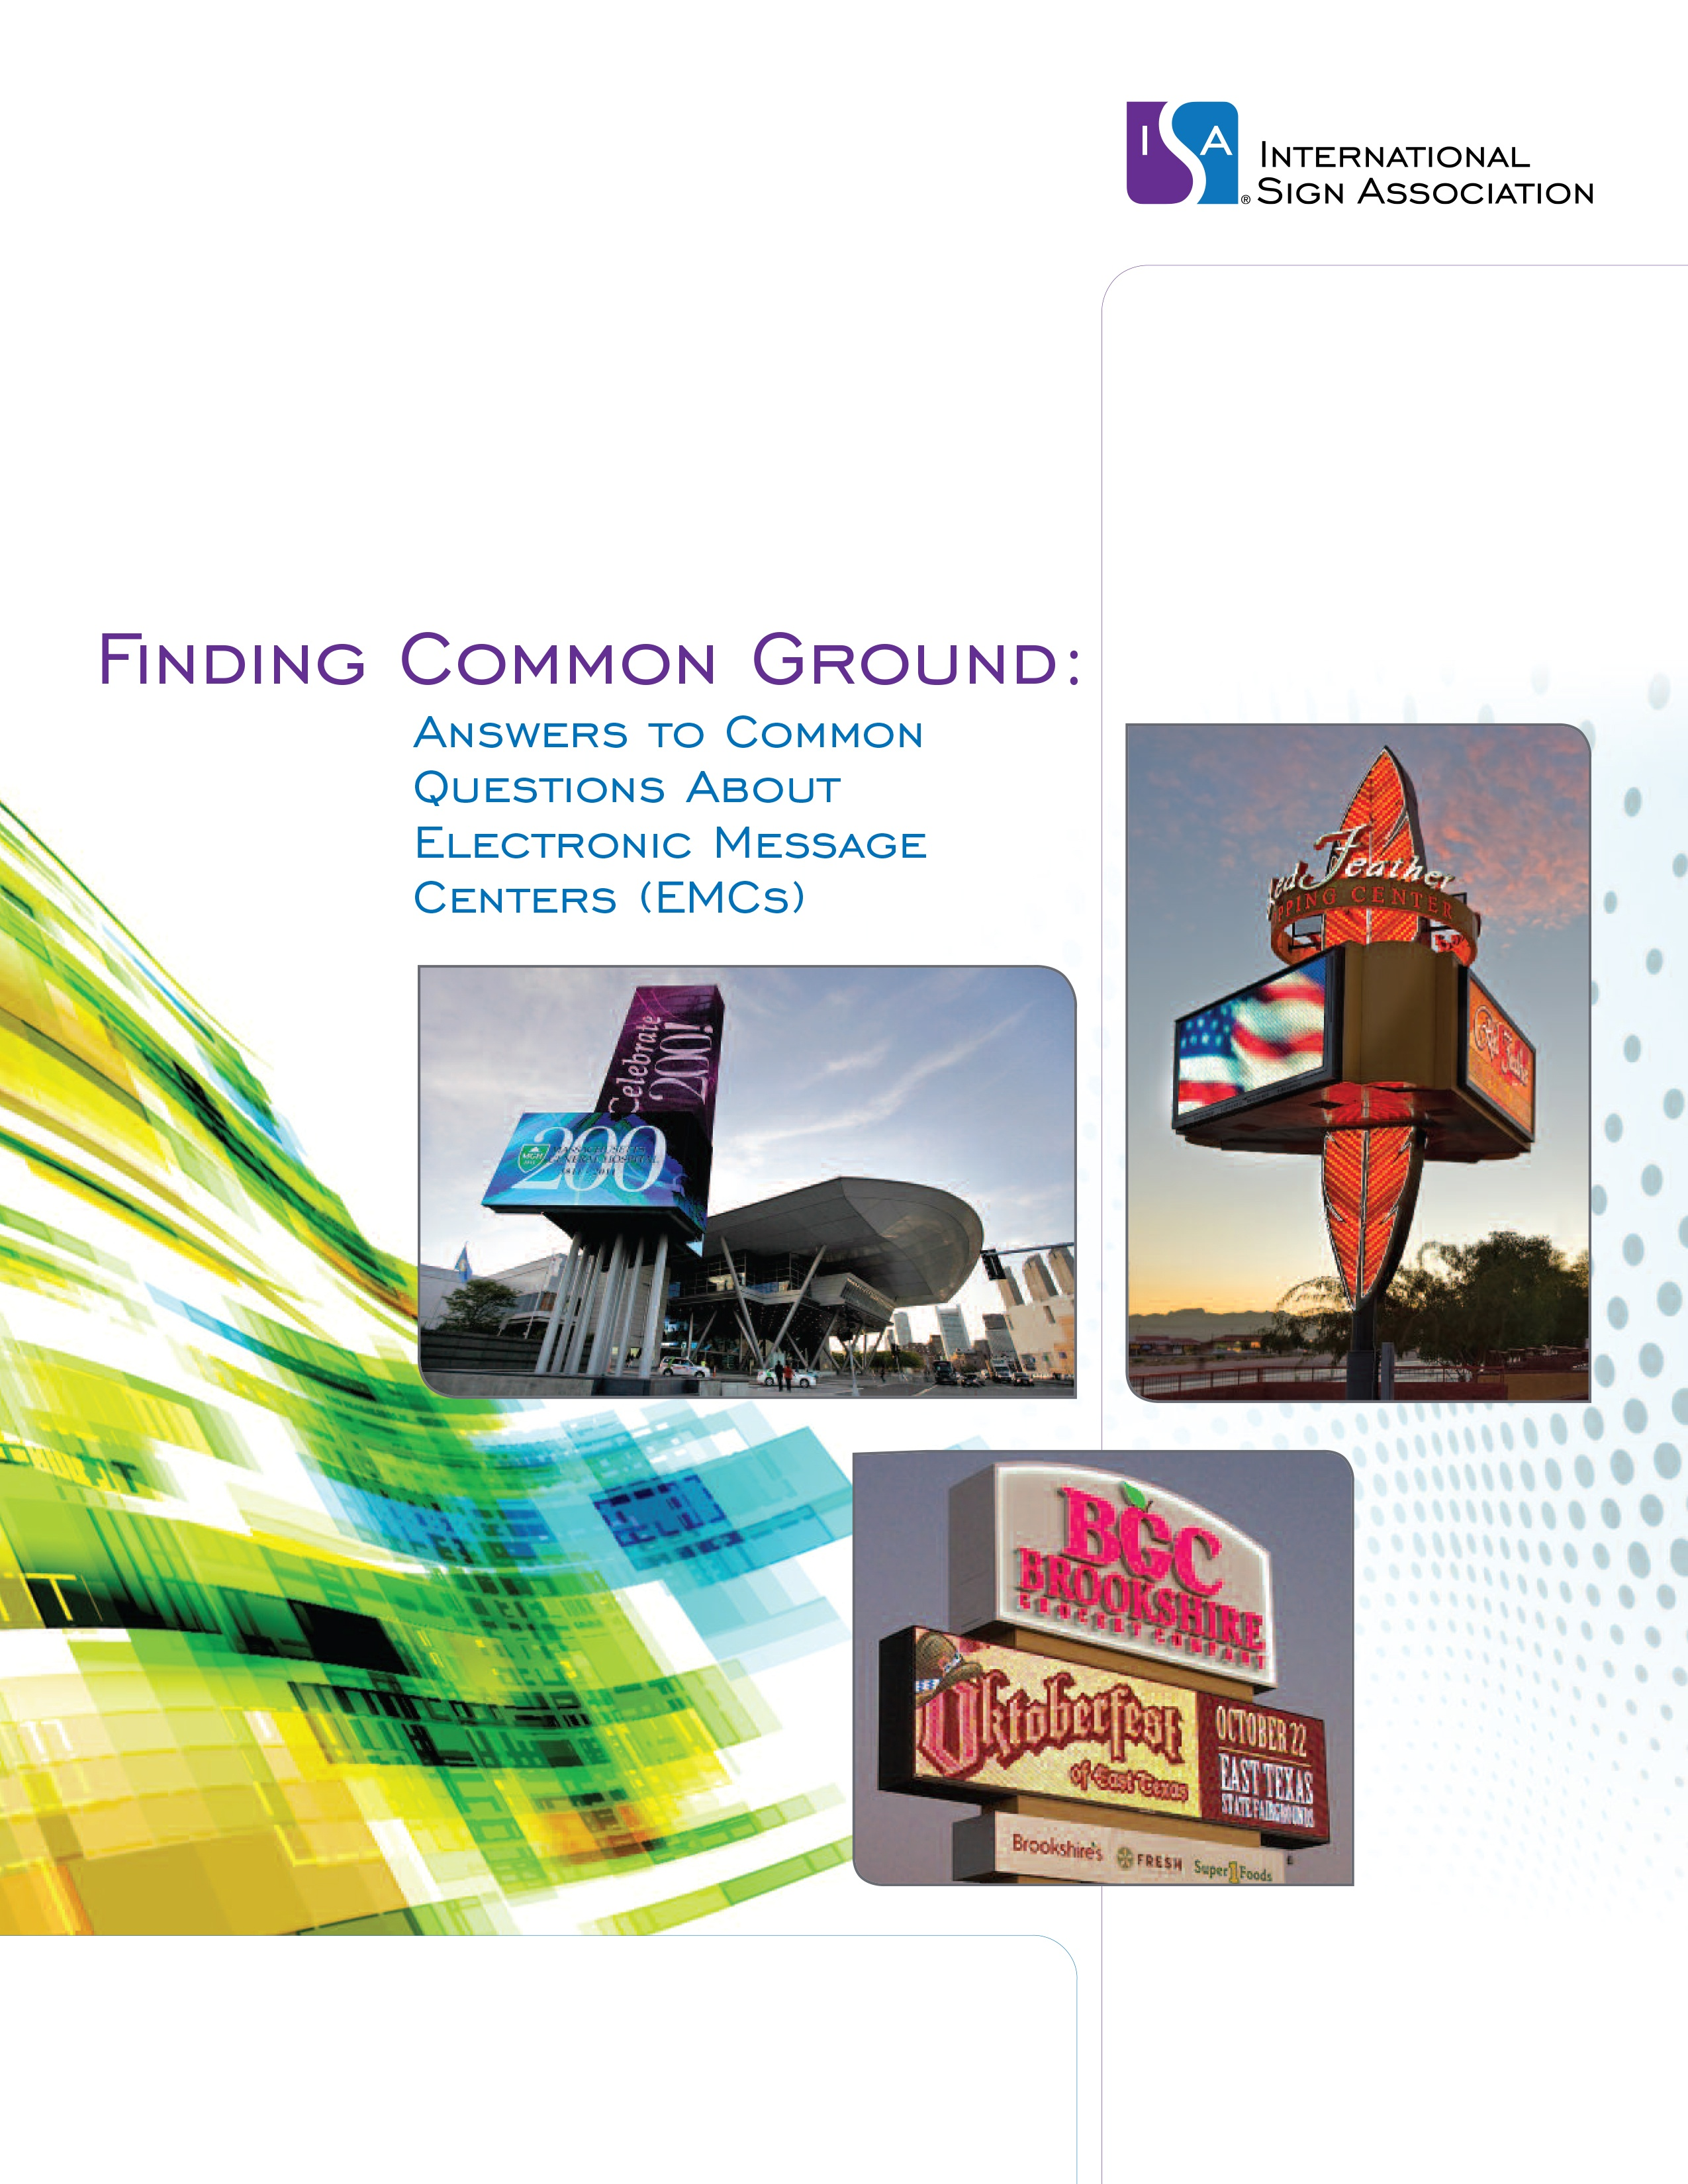 Finding Common Ground: Answers to Common Questions about Electronic Message Centers (EMCs)